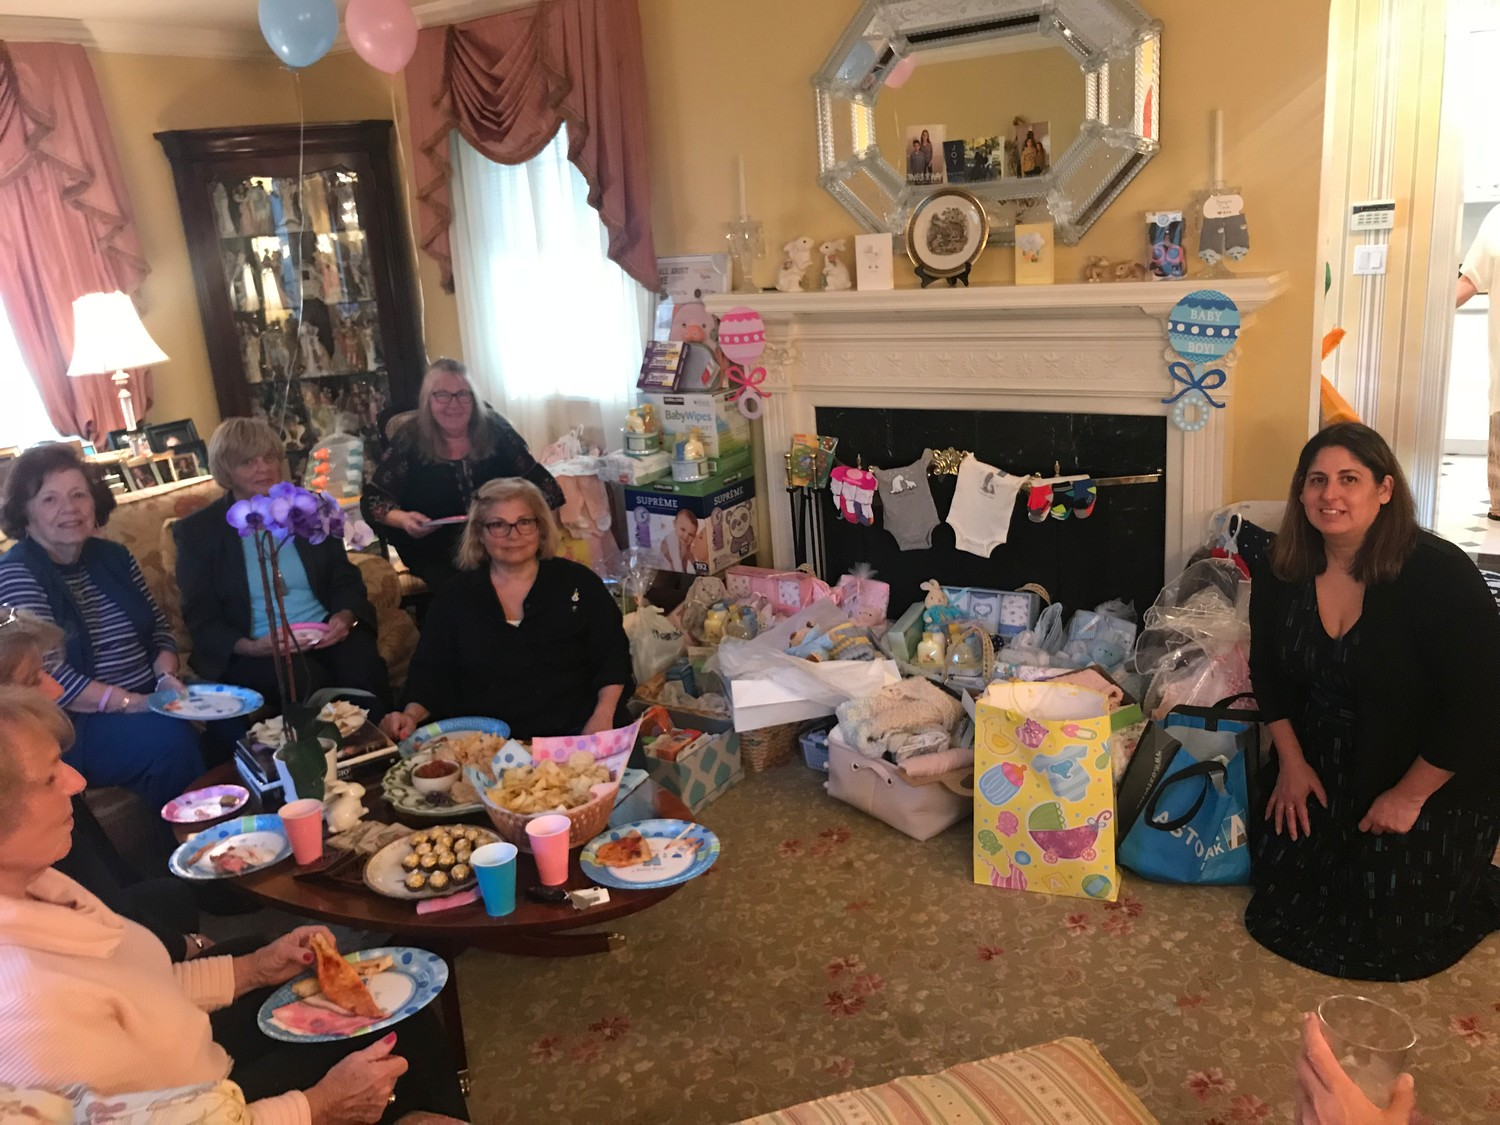 Members of the Lynbrook Kiwanis Club hosted a baby shower where they collected clothes, diapers and other items, which will be donated to needy mothers at South Nassau Communities Hospital, in Oceanside.